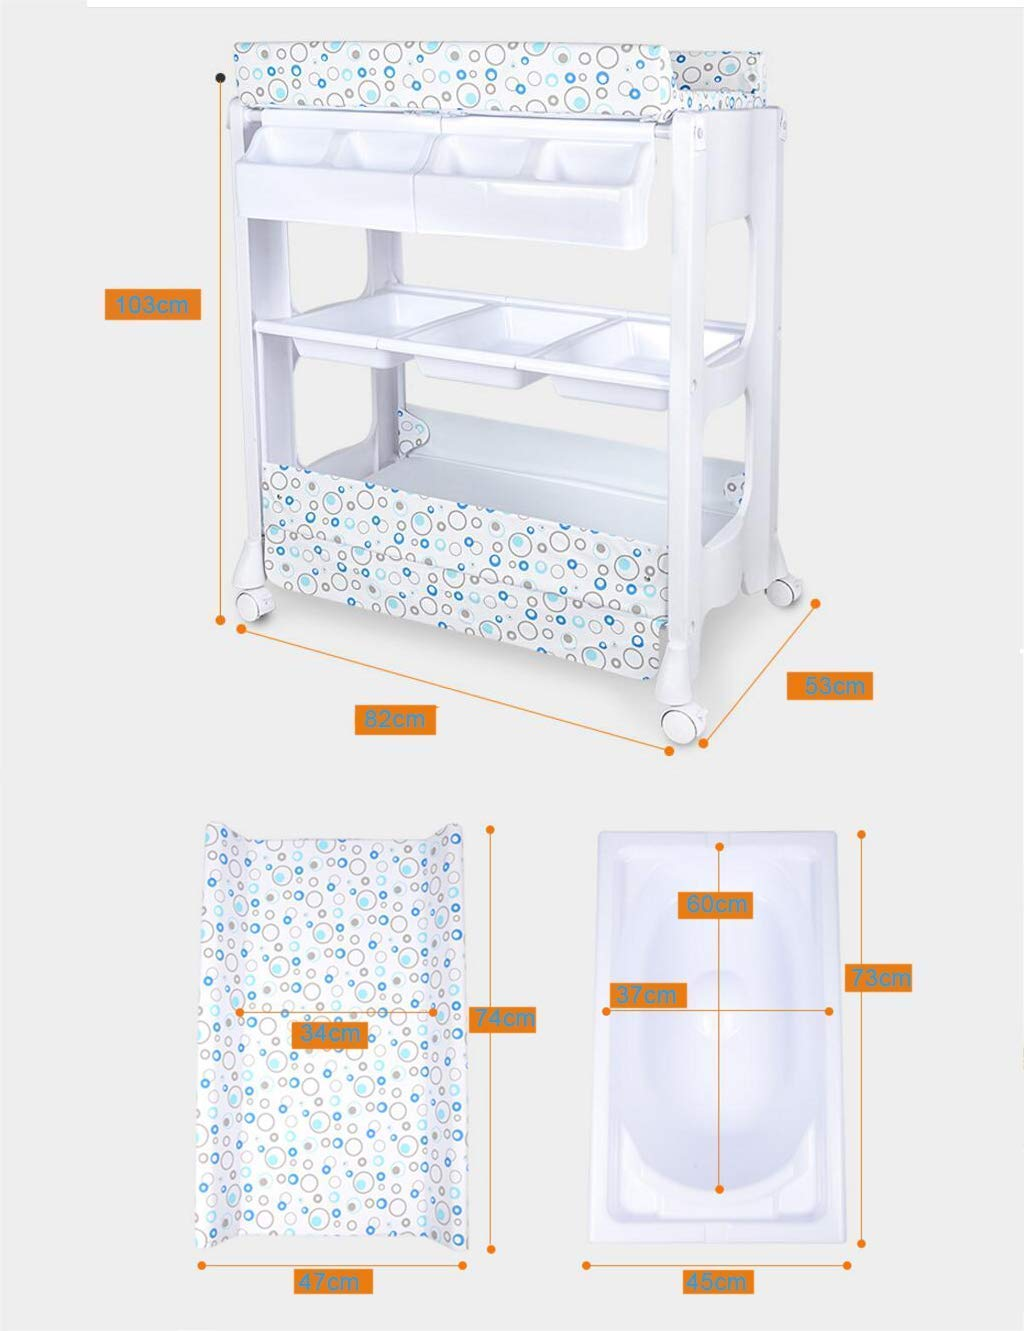 Barrier Bed Diaper Station with Wheels, Baby Dresser, Baby changing table with bathtub and shelves, Baby Care Table, Changing Table Linen, Baby Changer Tray DSJMUY ★ Table material for changing diapers: PP / PVC / high strength steel pipe. ★ Changing the stable construction of the diaper station: all our products are designed with the safety of your children in mind. ★ Change the pad 2 in 1 Desigh: the changing table can also be used as a massage table for babies.It offers comfort and practicality.It is designed at the appropriate height of the parents to prevent the pains of Mother's back and pains kneel or bend when changing diapers to babies. It has open shelves that add extra security. 2